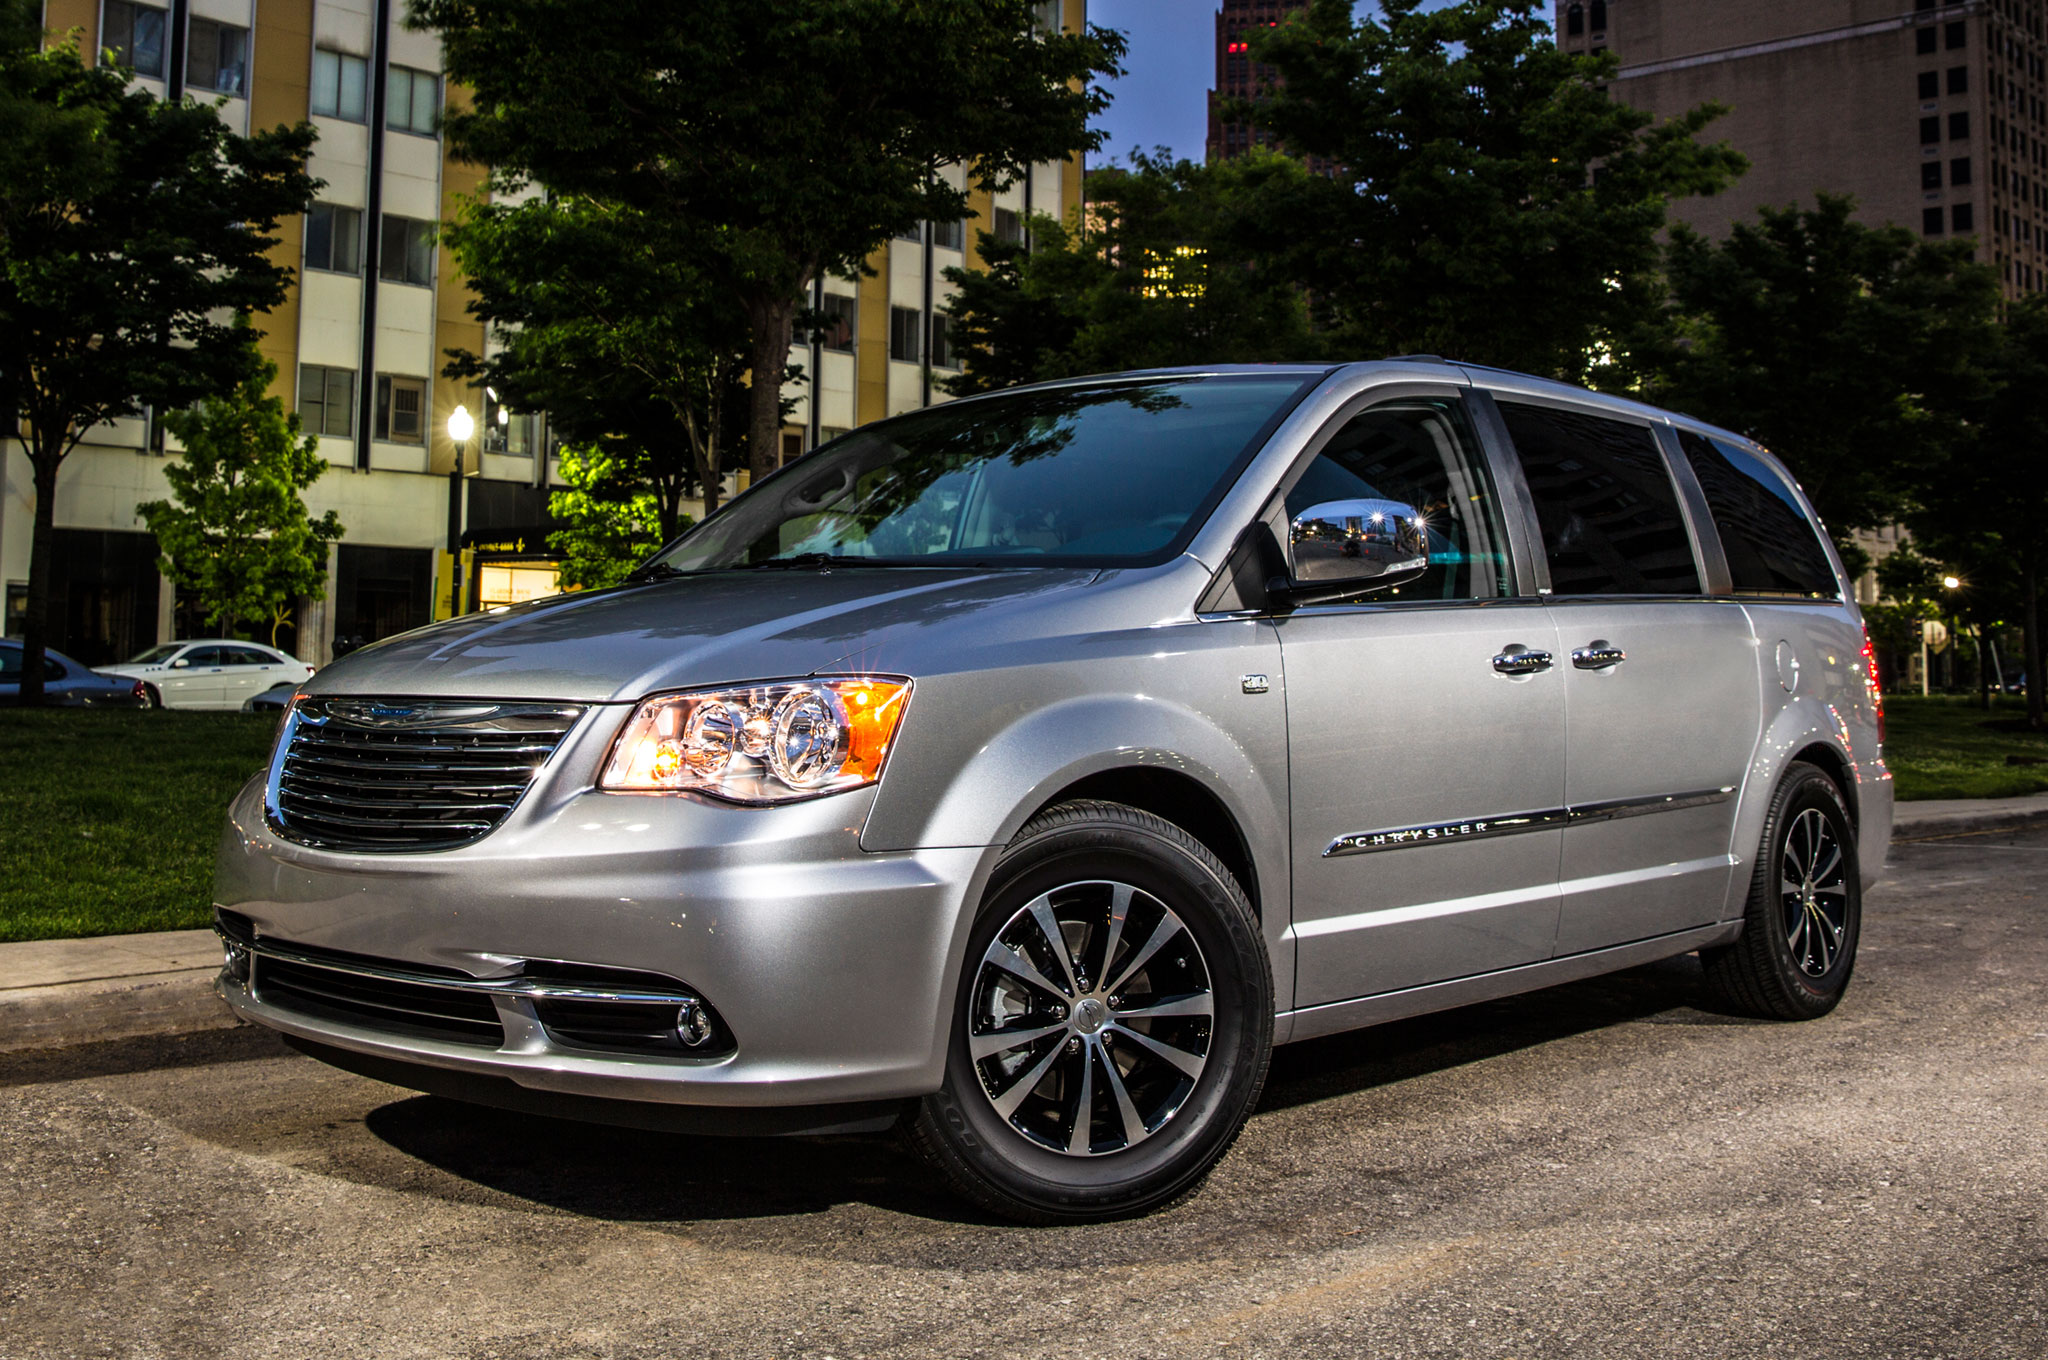 2015 Chrysler Town and Country #3